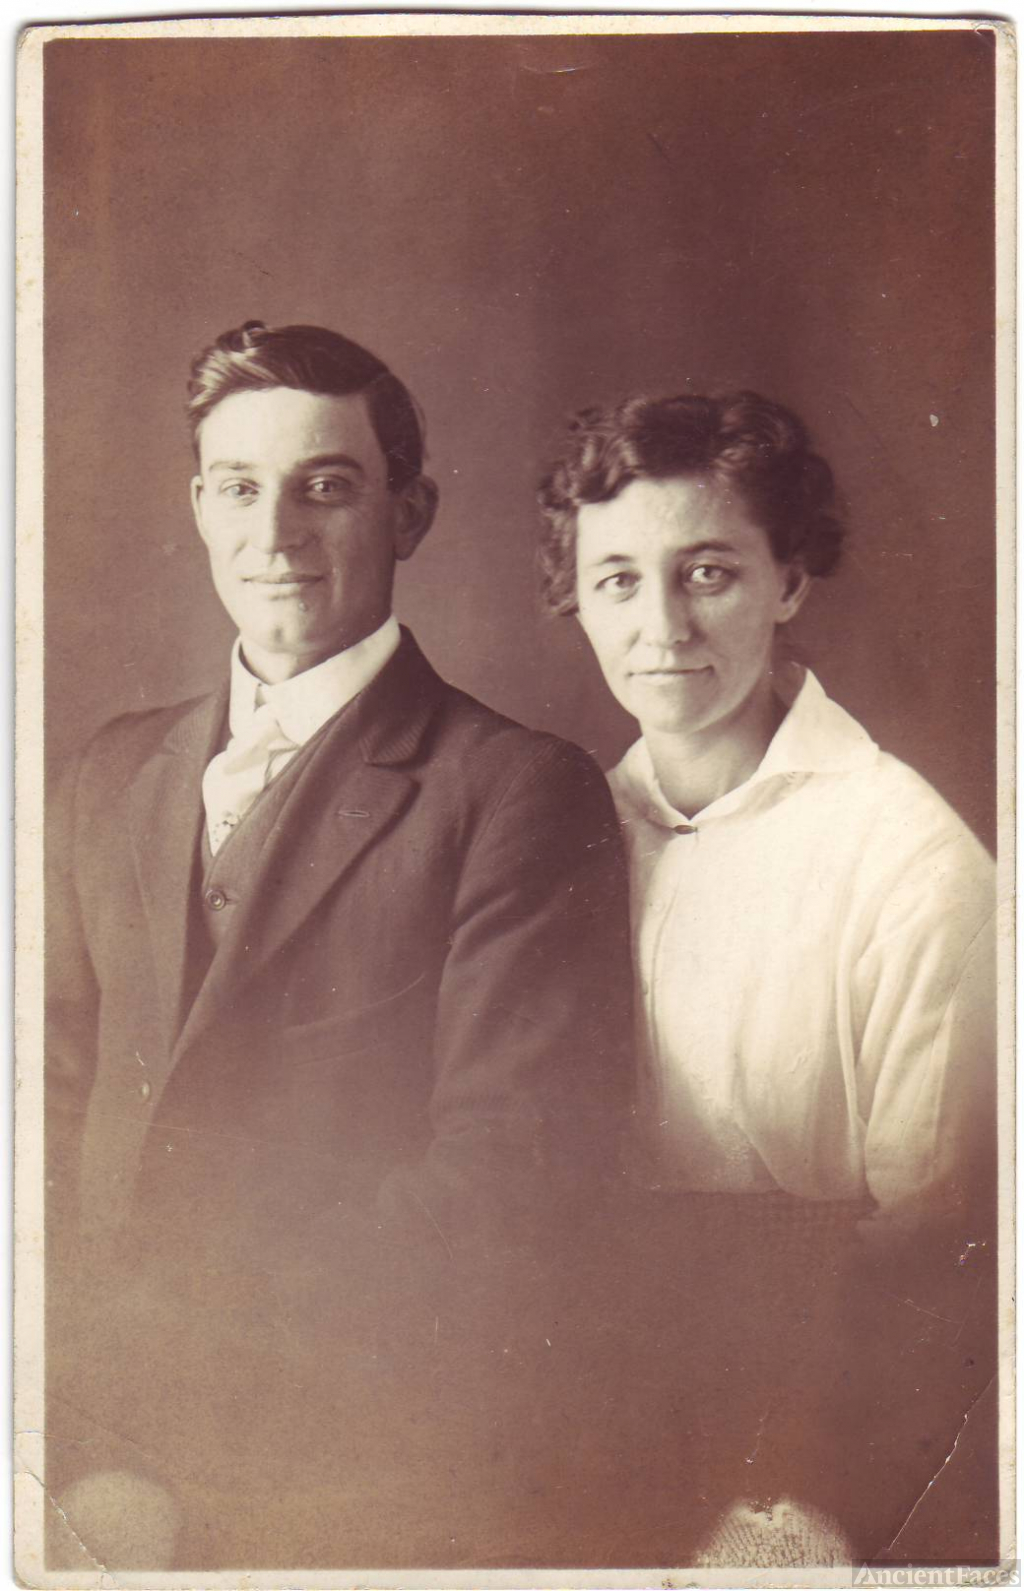 Possibly Schwalbauch Family